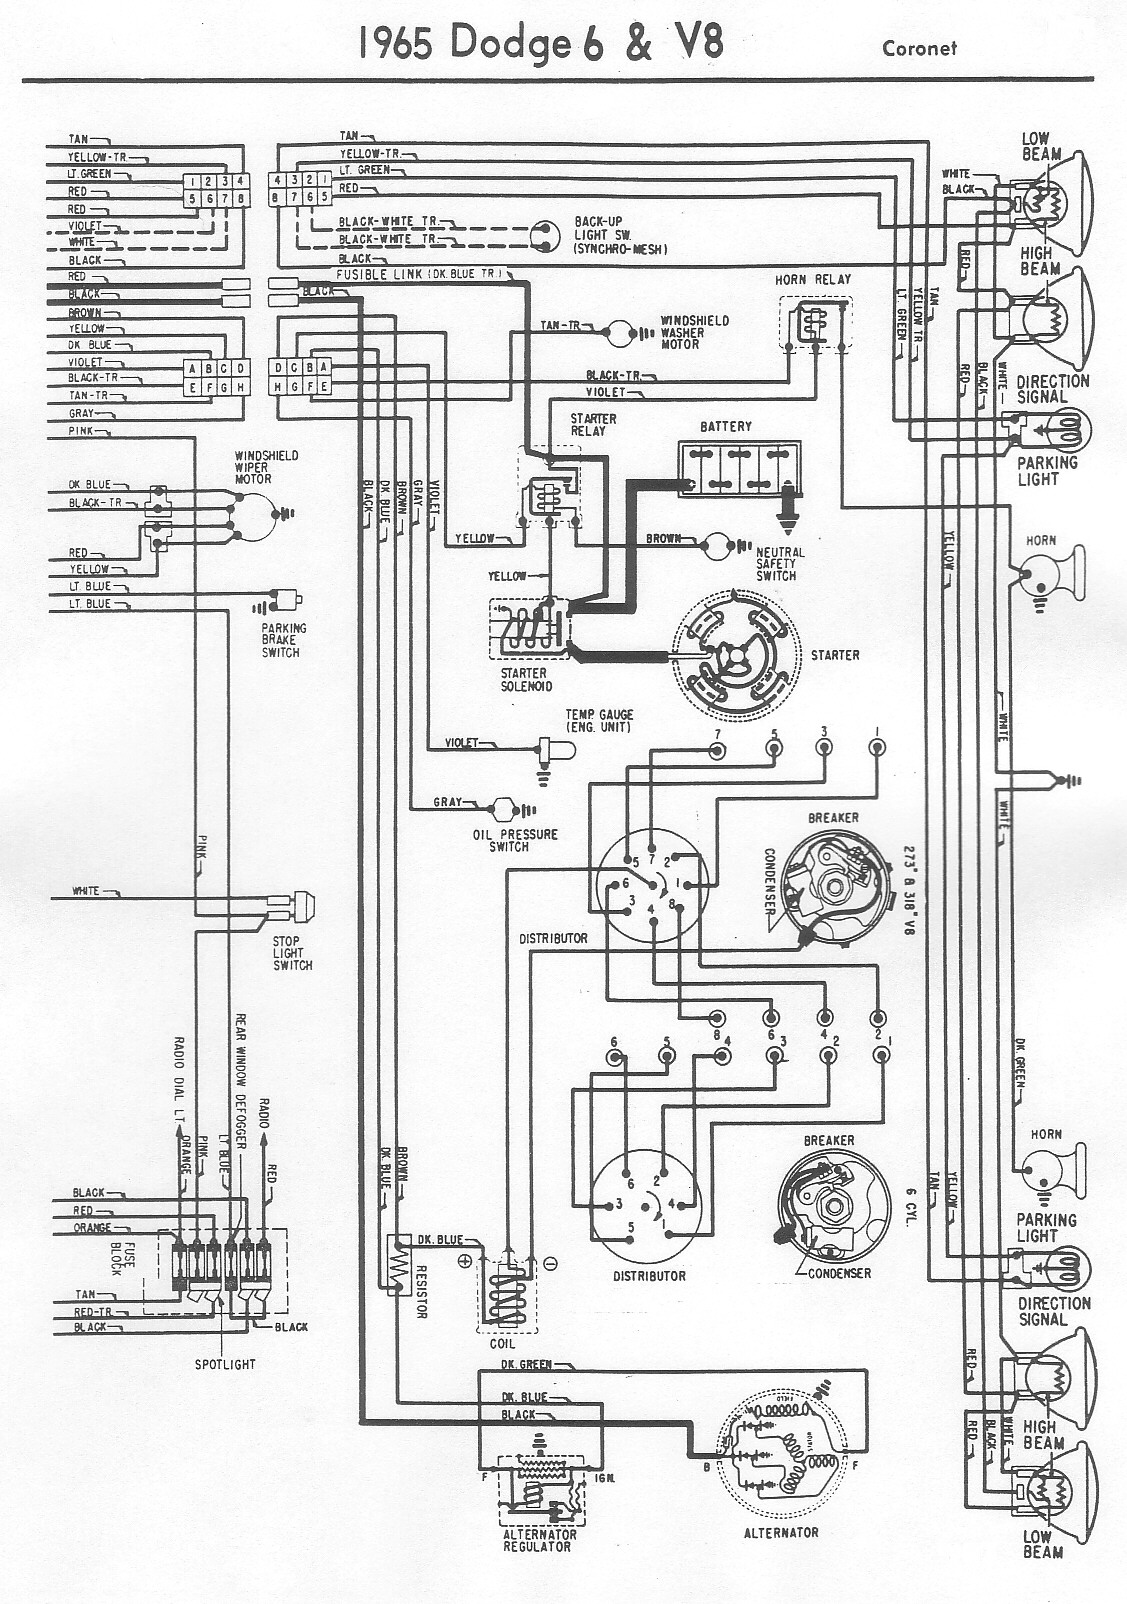 06 dodge charger wiring diagram [ 1127 x 1604 Pixel ]